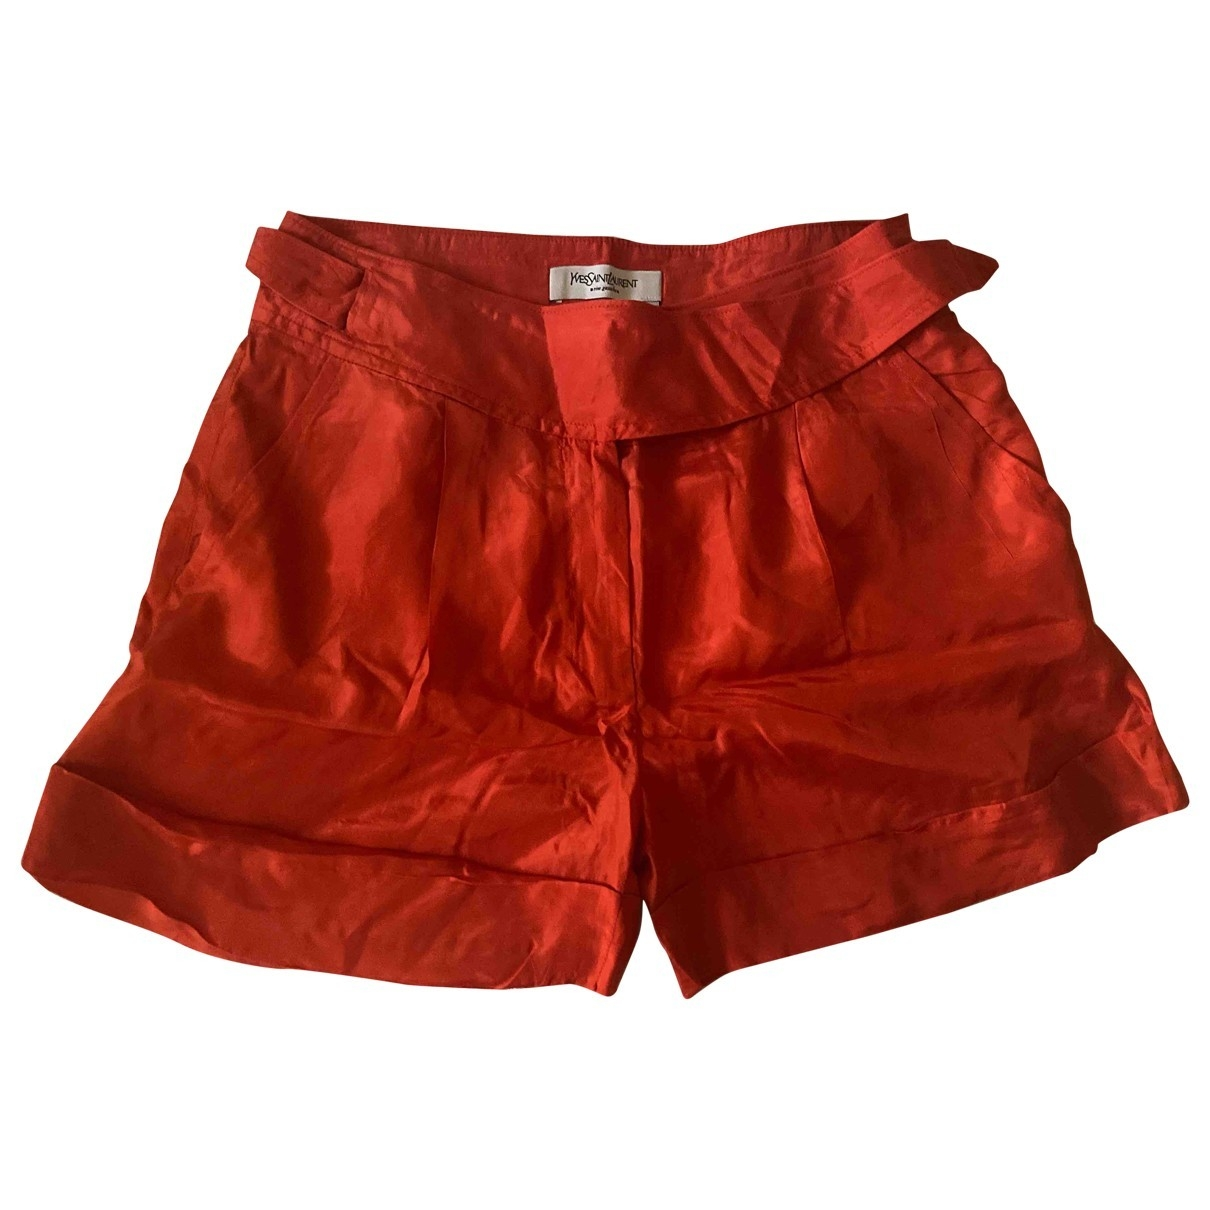 Yves Saint Laurent \N Red Silk Shorts for Women 38 FR